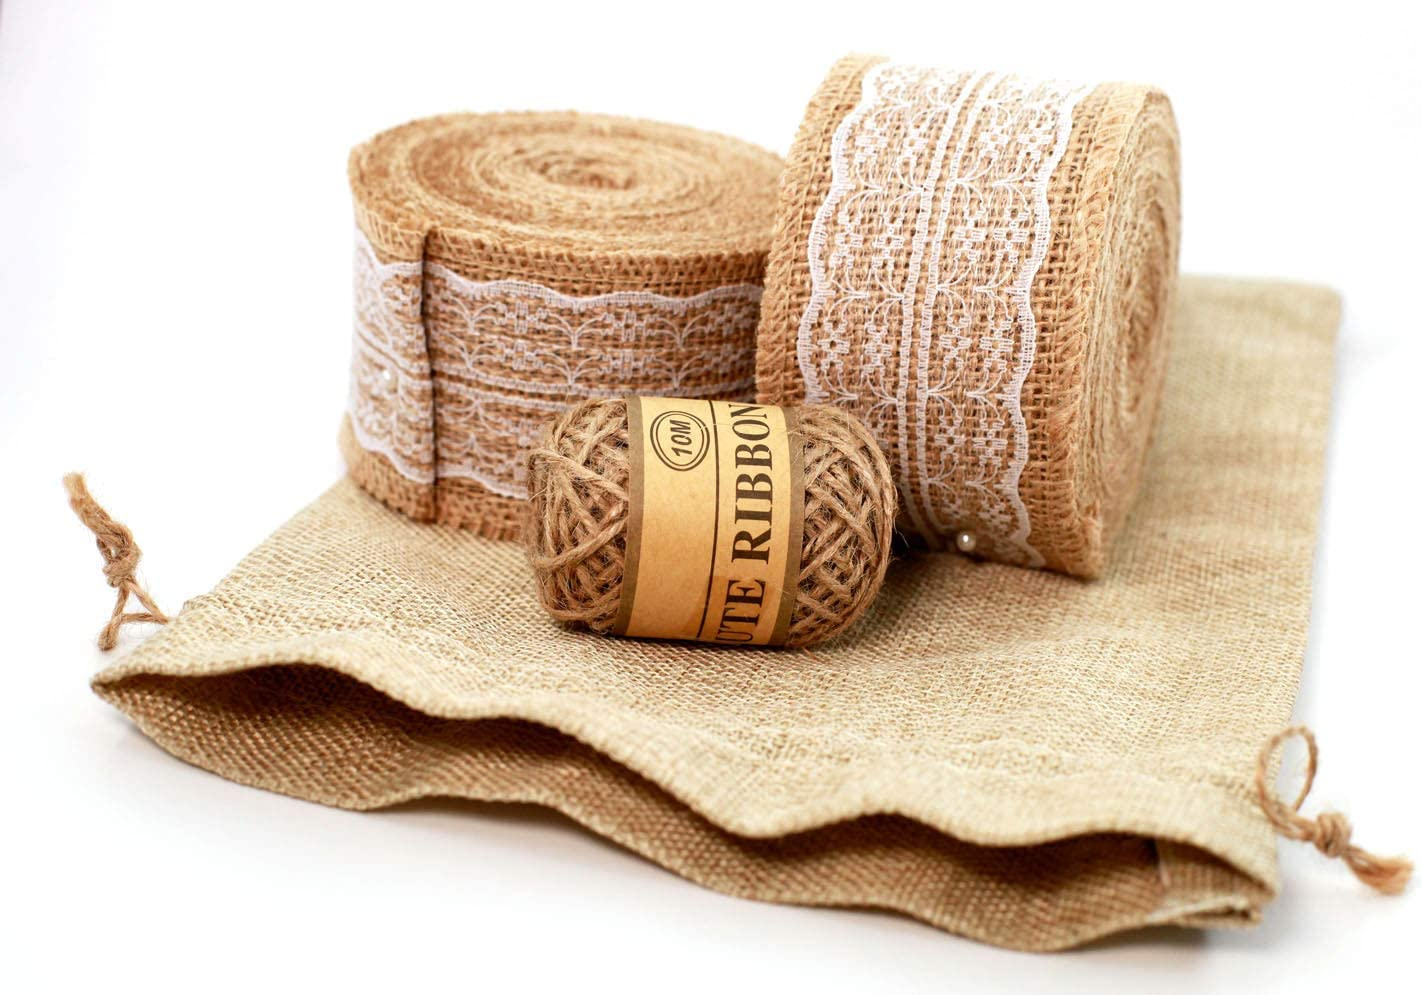 CHUXIA 472 Inch Natural Burlap Ribbon Roll with White Lace Trims, Burlap Border Tape for Wedding Decoration DIY Craft Home Party Decoration